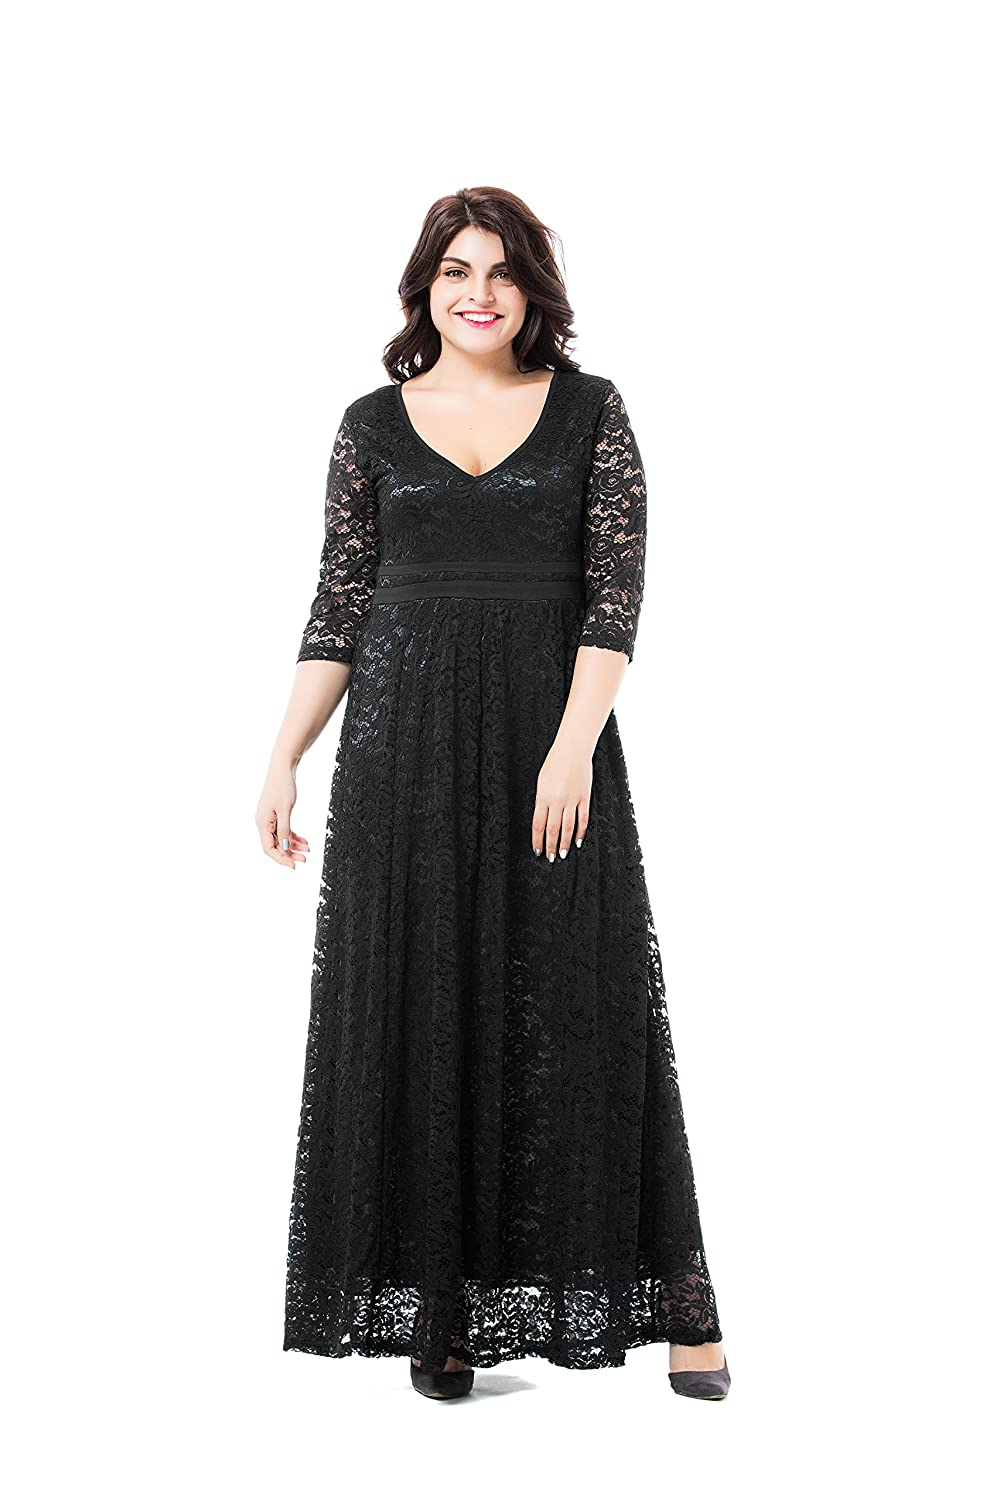 Titanic Fashion – 1st Class Women's Clothing ESPRLIA Womens Plus Size Double V Neck 3/4 Sleeve Dress High Waist Maxi Wedding Dress $29.99 AT vintagedancer.com